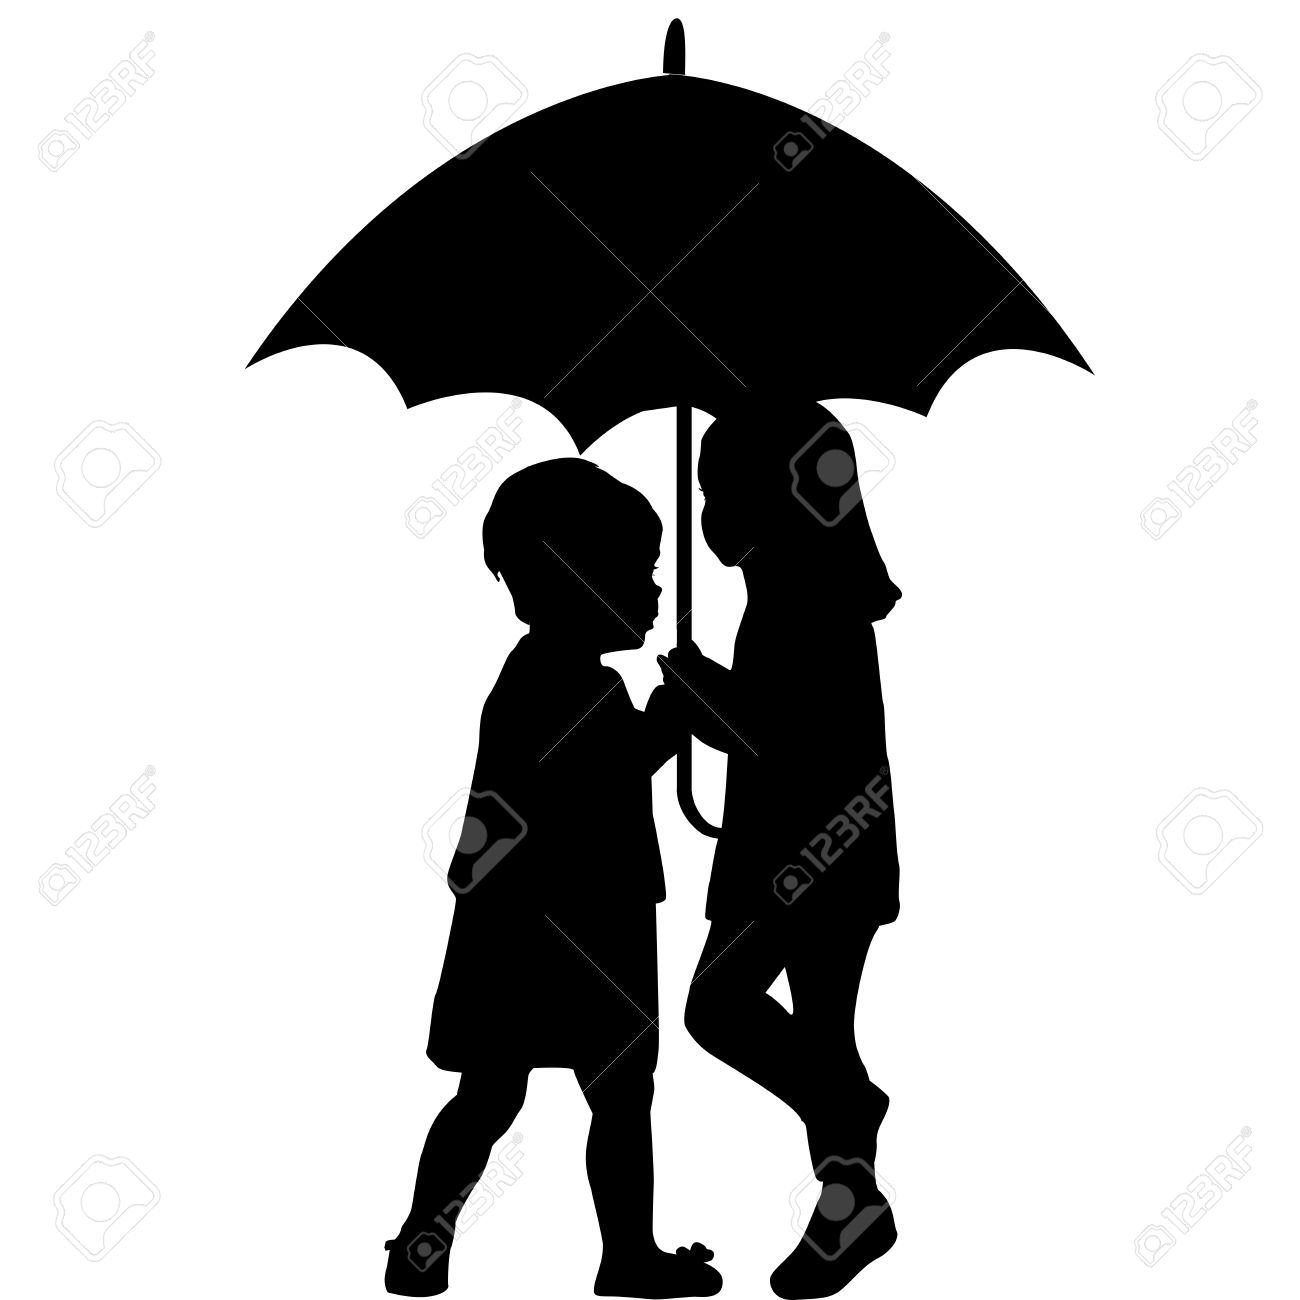 clipart little girl sitting with umbrella silhouette #17